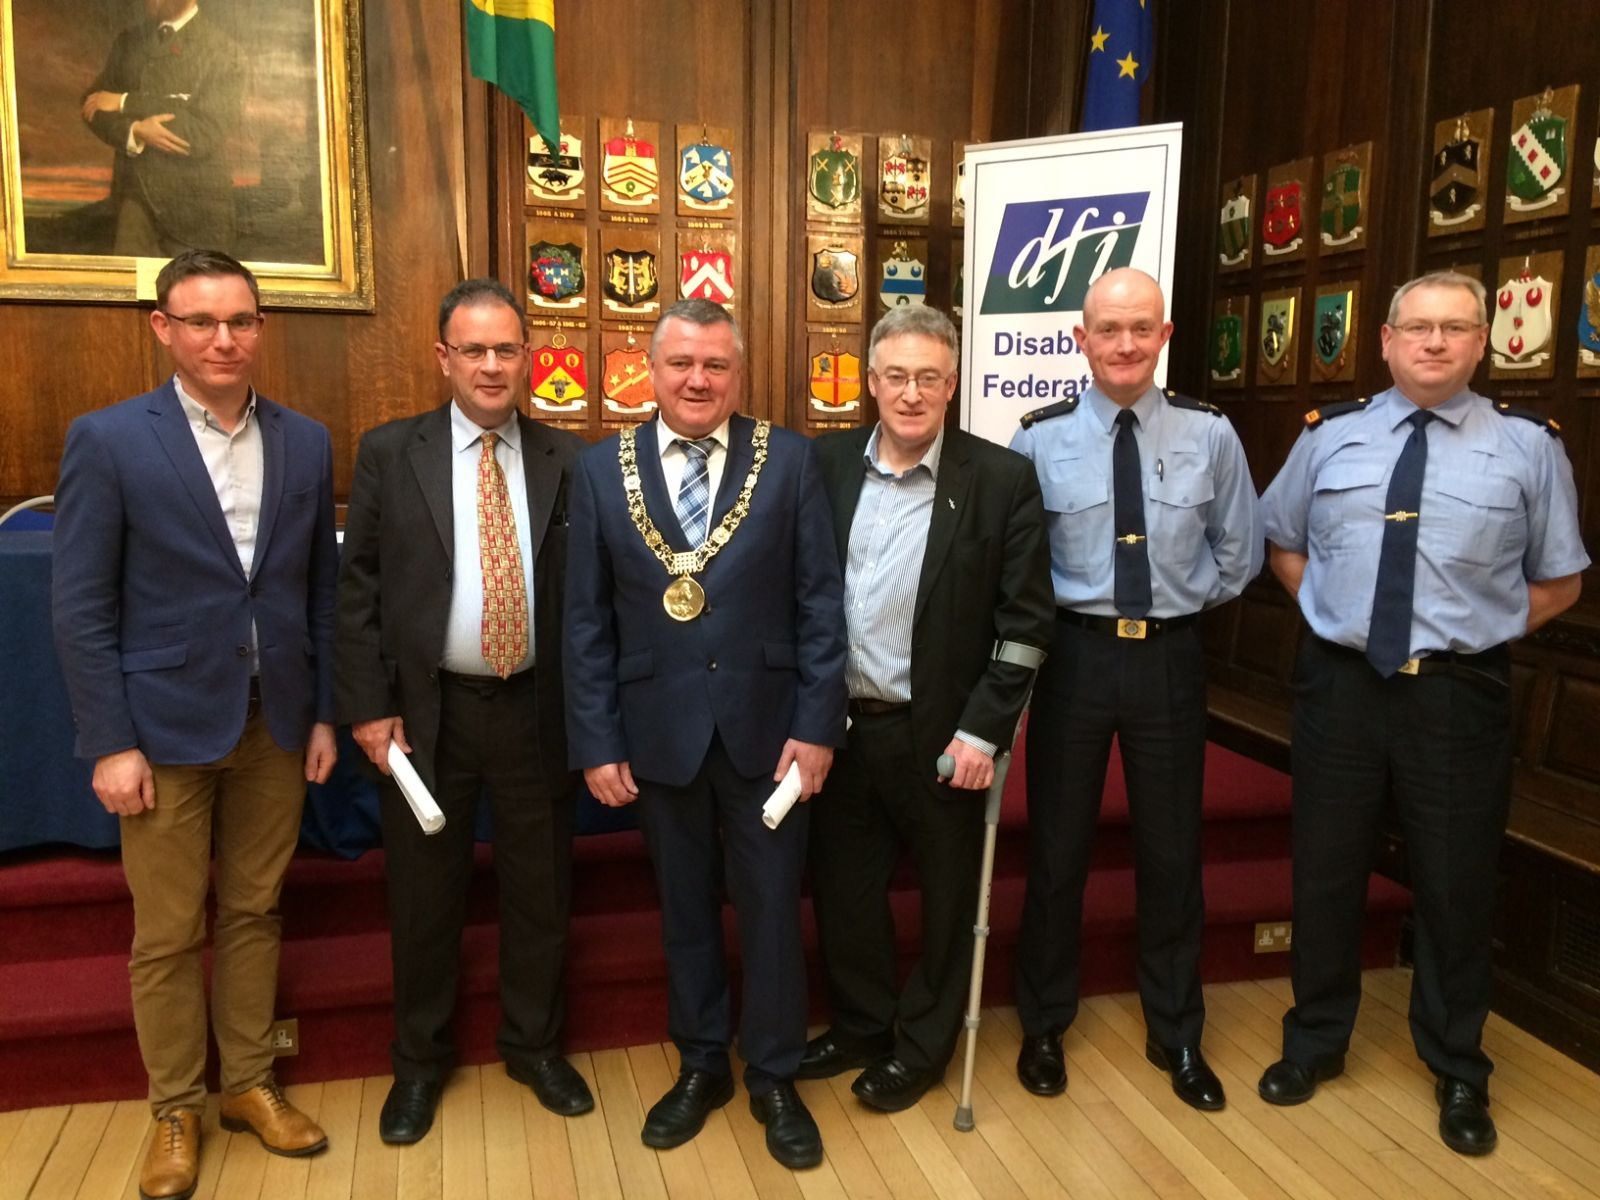 Pat Nestor, Accessibility Officer with Dublin City Council, Cllr Rory McGinley, Lord Mayor, Cllr Brendan Carr, Senator John Dolan, Sergeant Peter Woods and Inspector David Butler, DMR Office